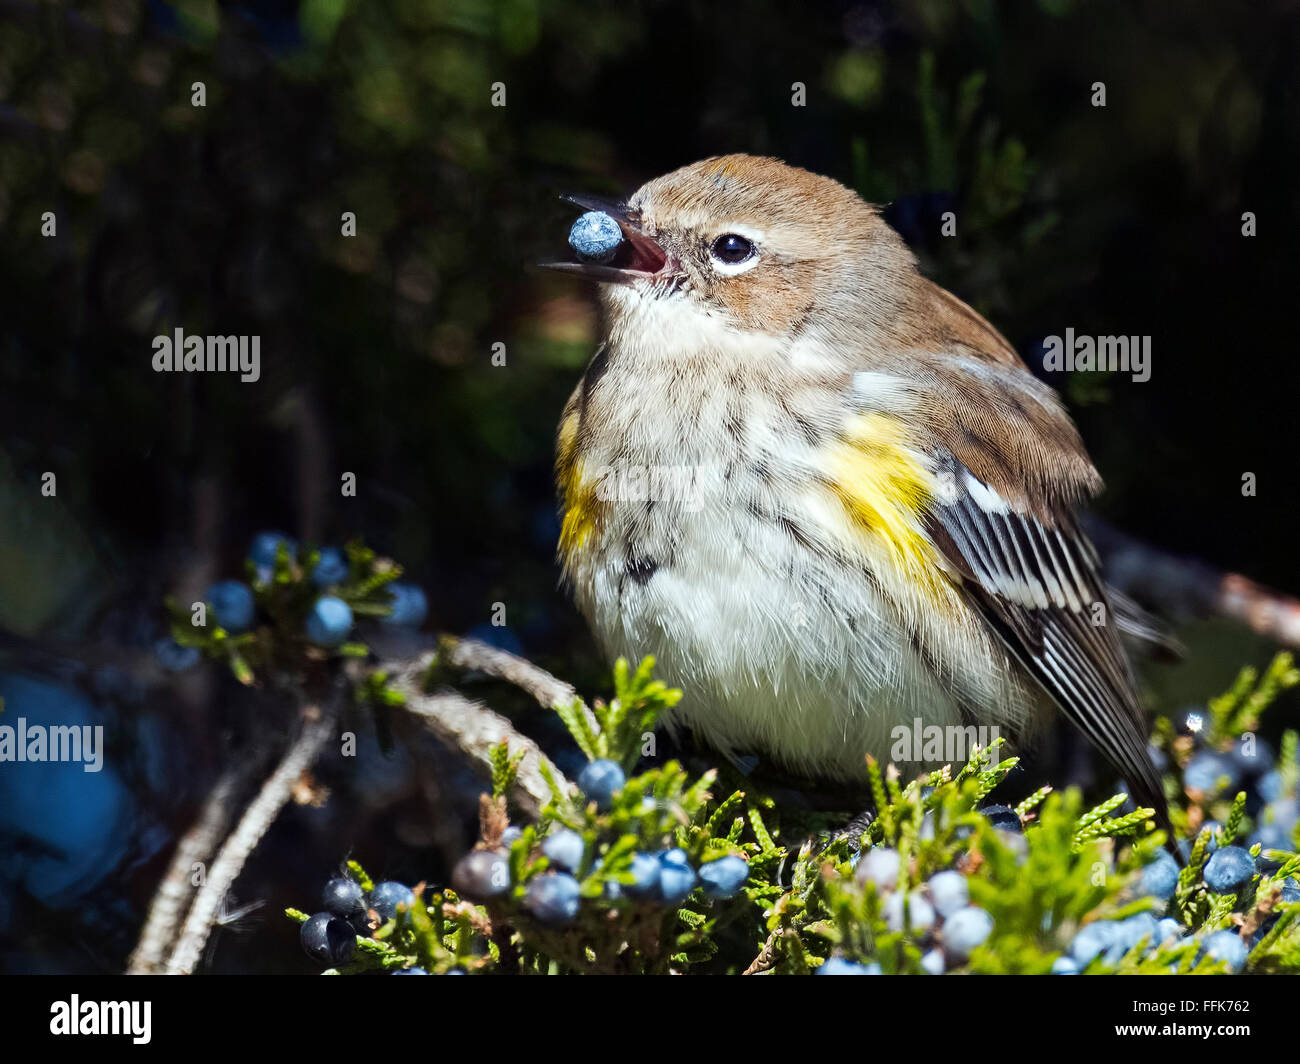 Ma;e Yellow-rumped Warbler eating berries - Stock Image